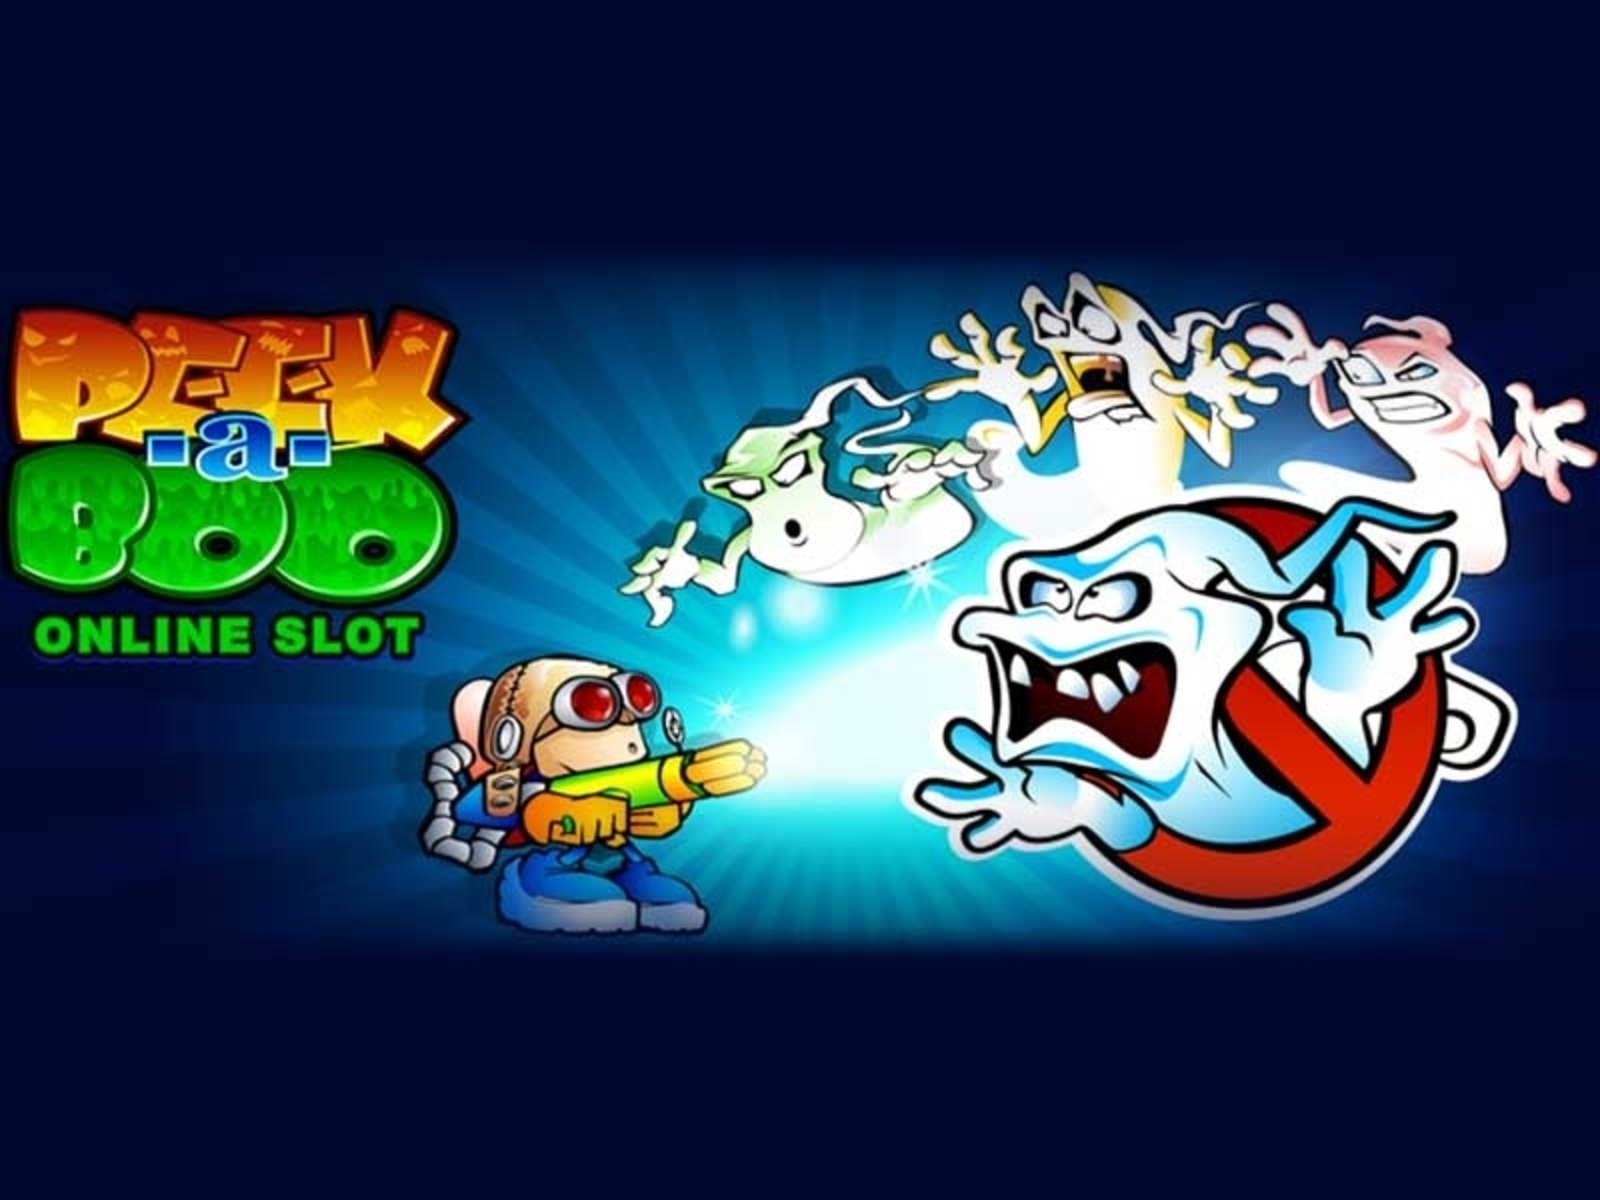 Se Peek-a-Boo Online Slot Demo Game, Microgaming